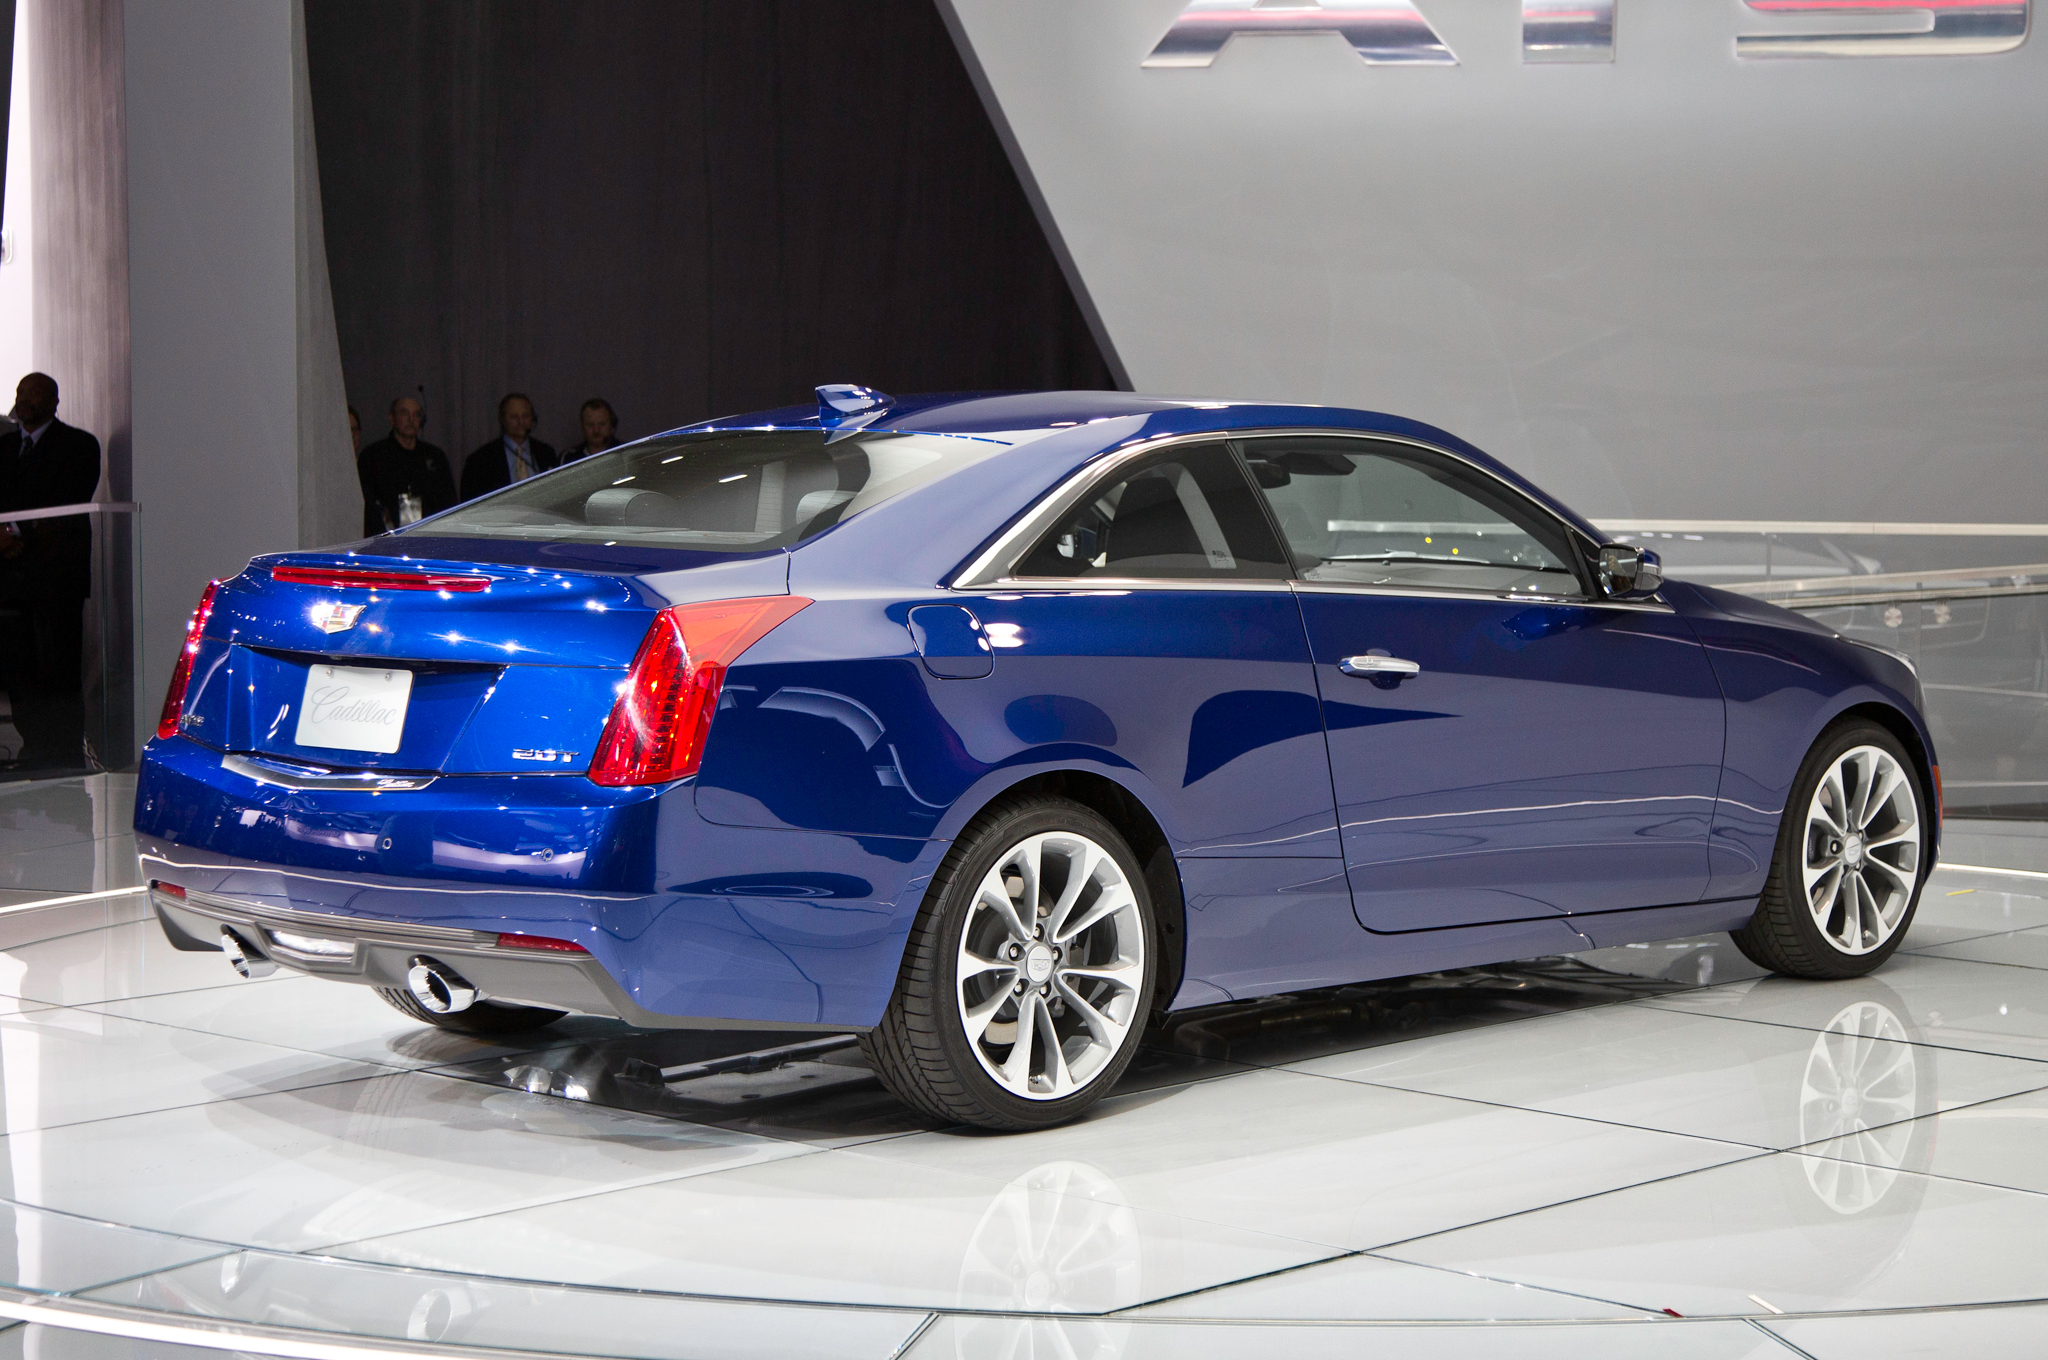 2015 Cadillac Ats Coupe Rear Design (Photo 18 of 21)